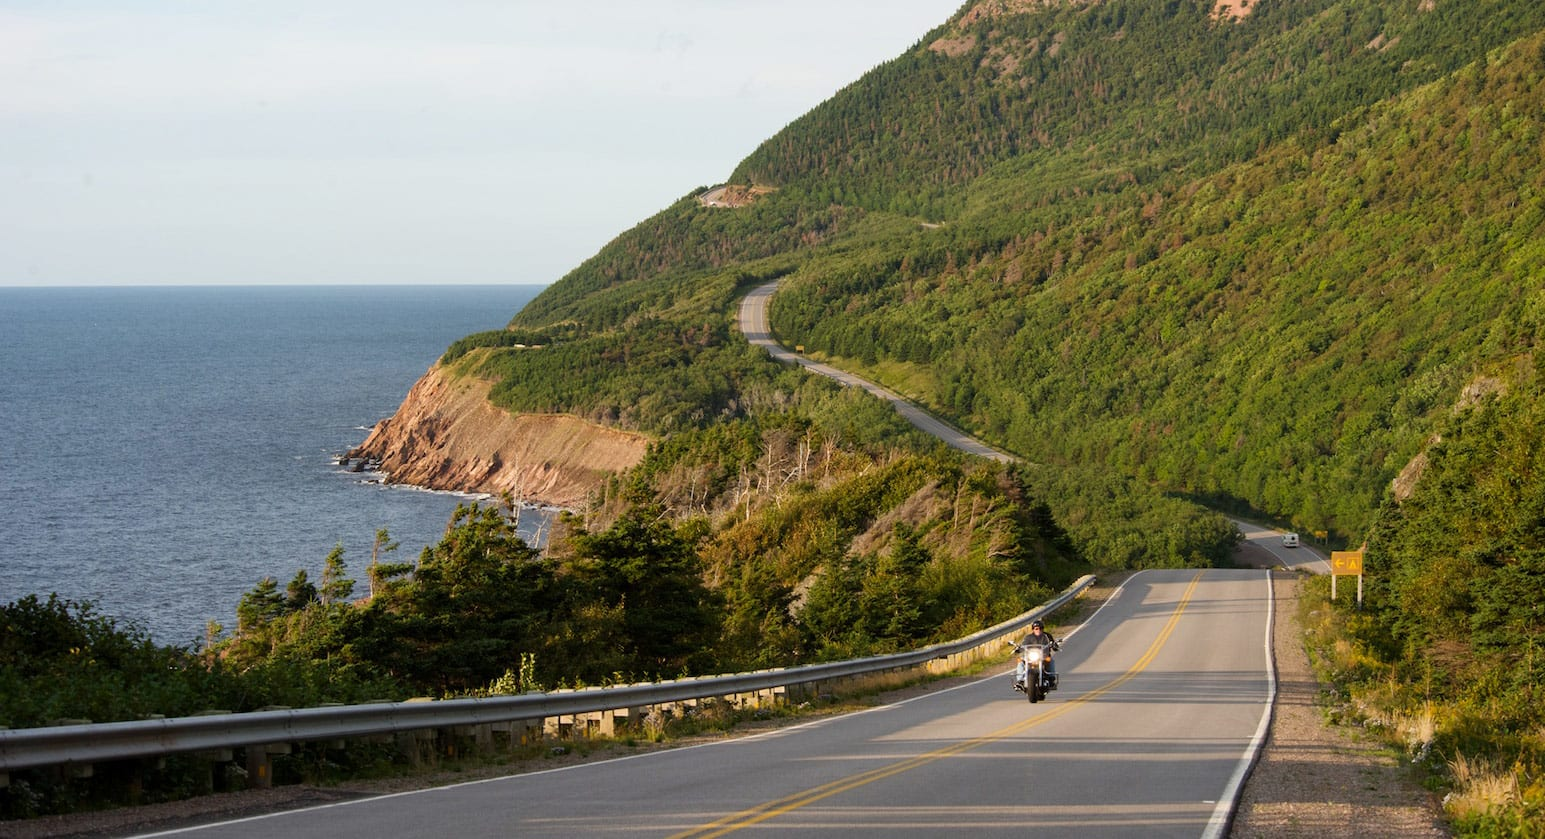 A motorbike racing round an island road with hills and sea in the background